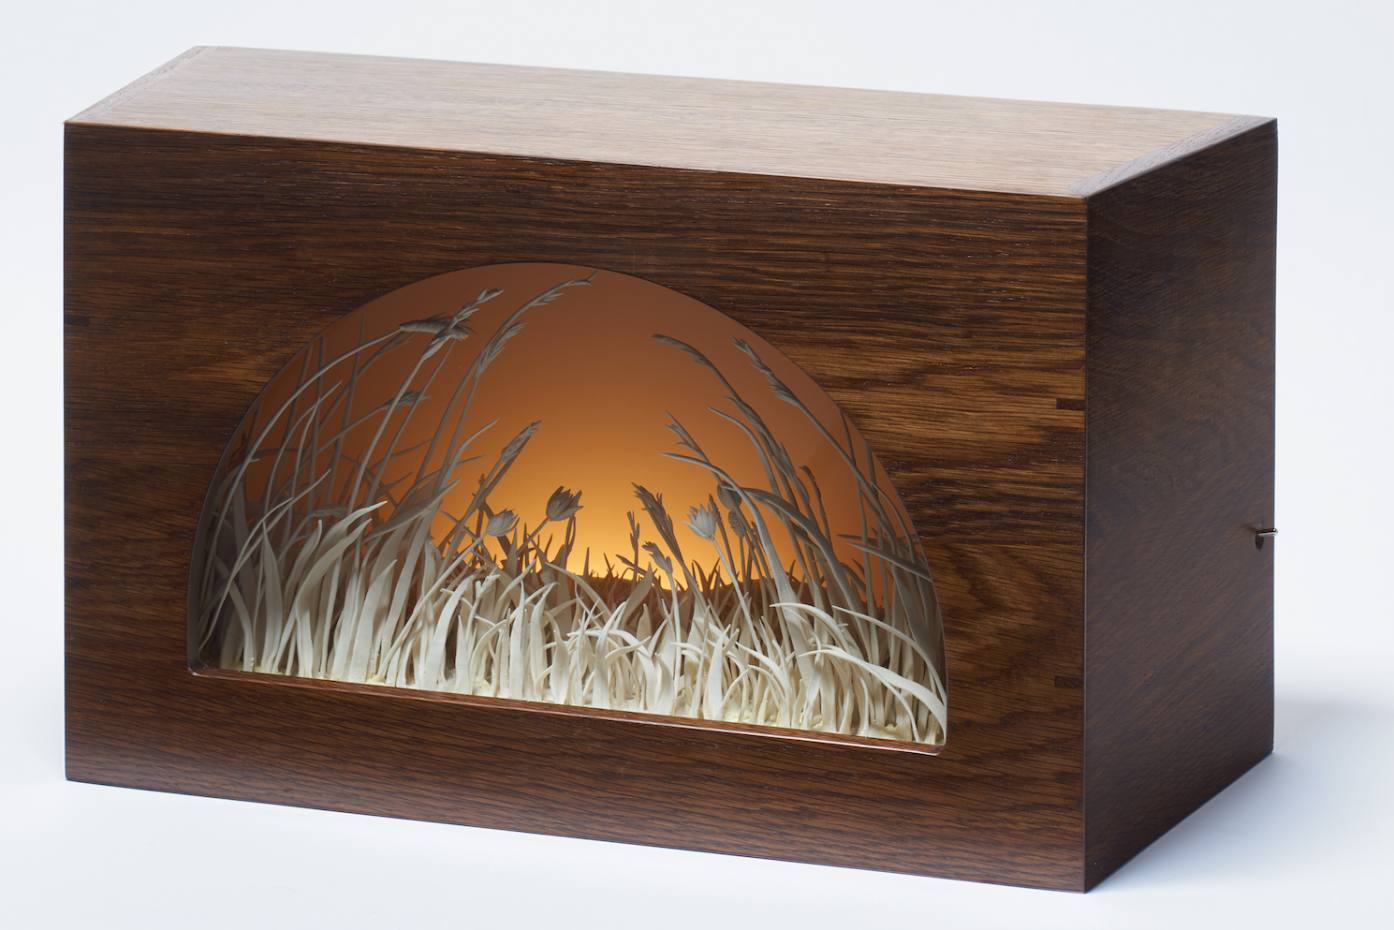 Meadow, displayed in a Peephole Box, £4,600, by Katie Spragg